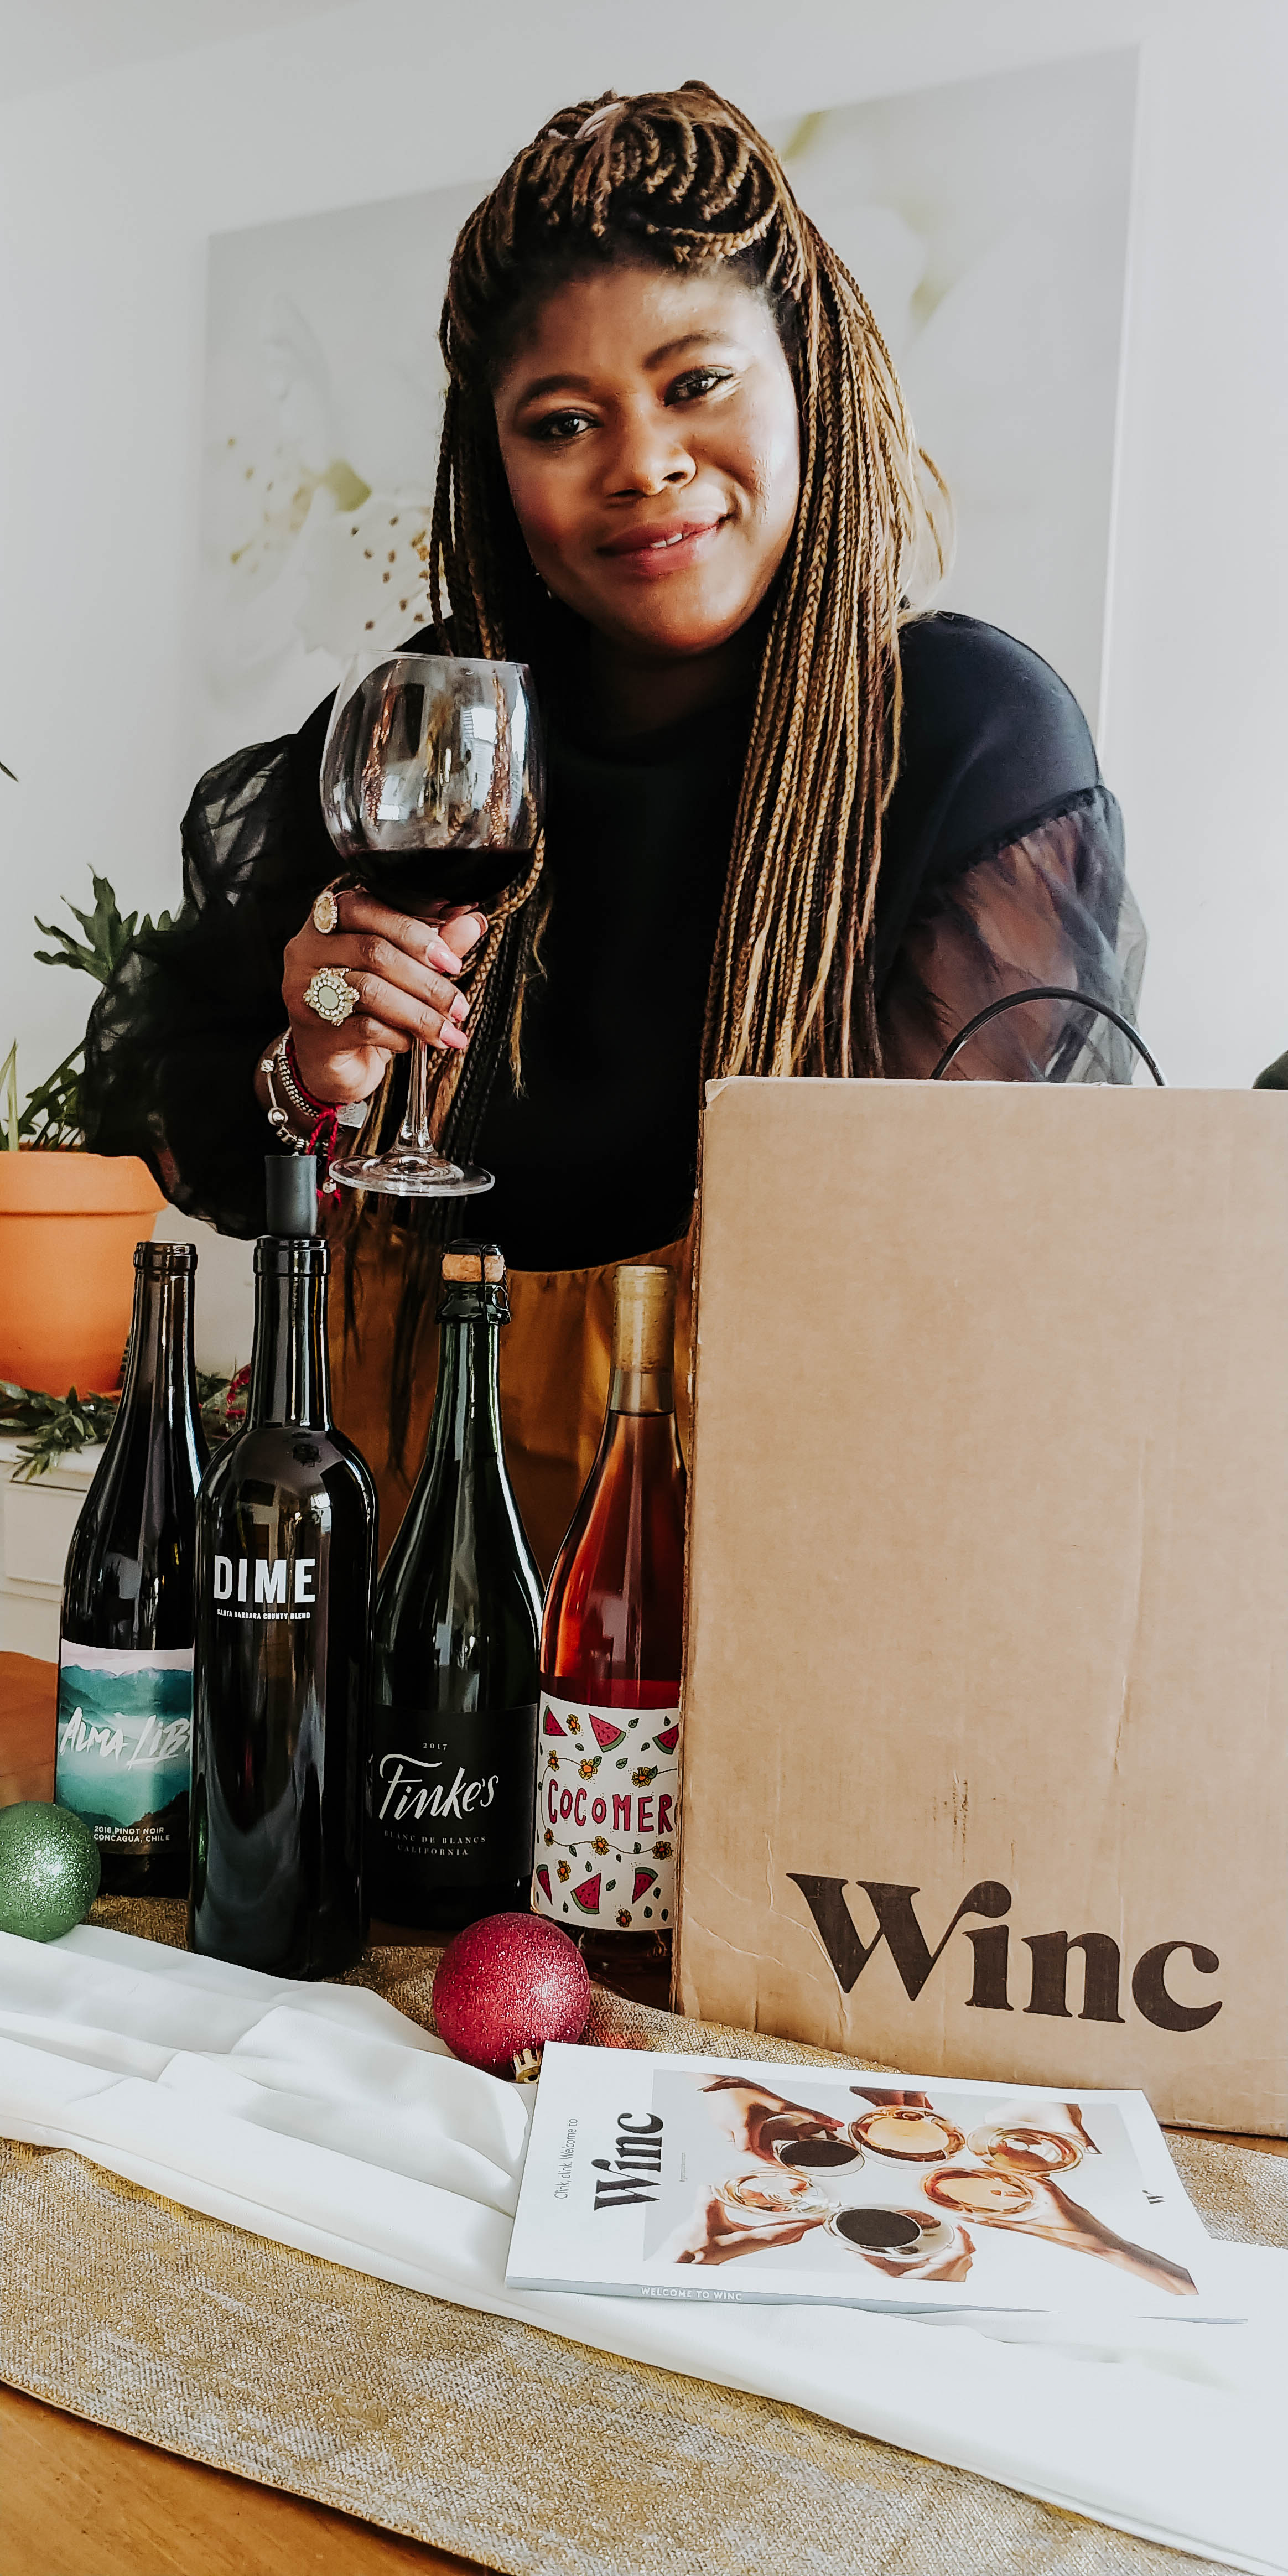 Image of Glory with wine glass and bottles of wine from winc.com.